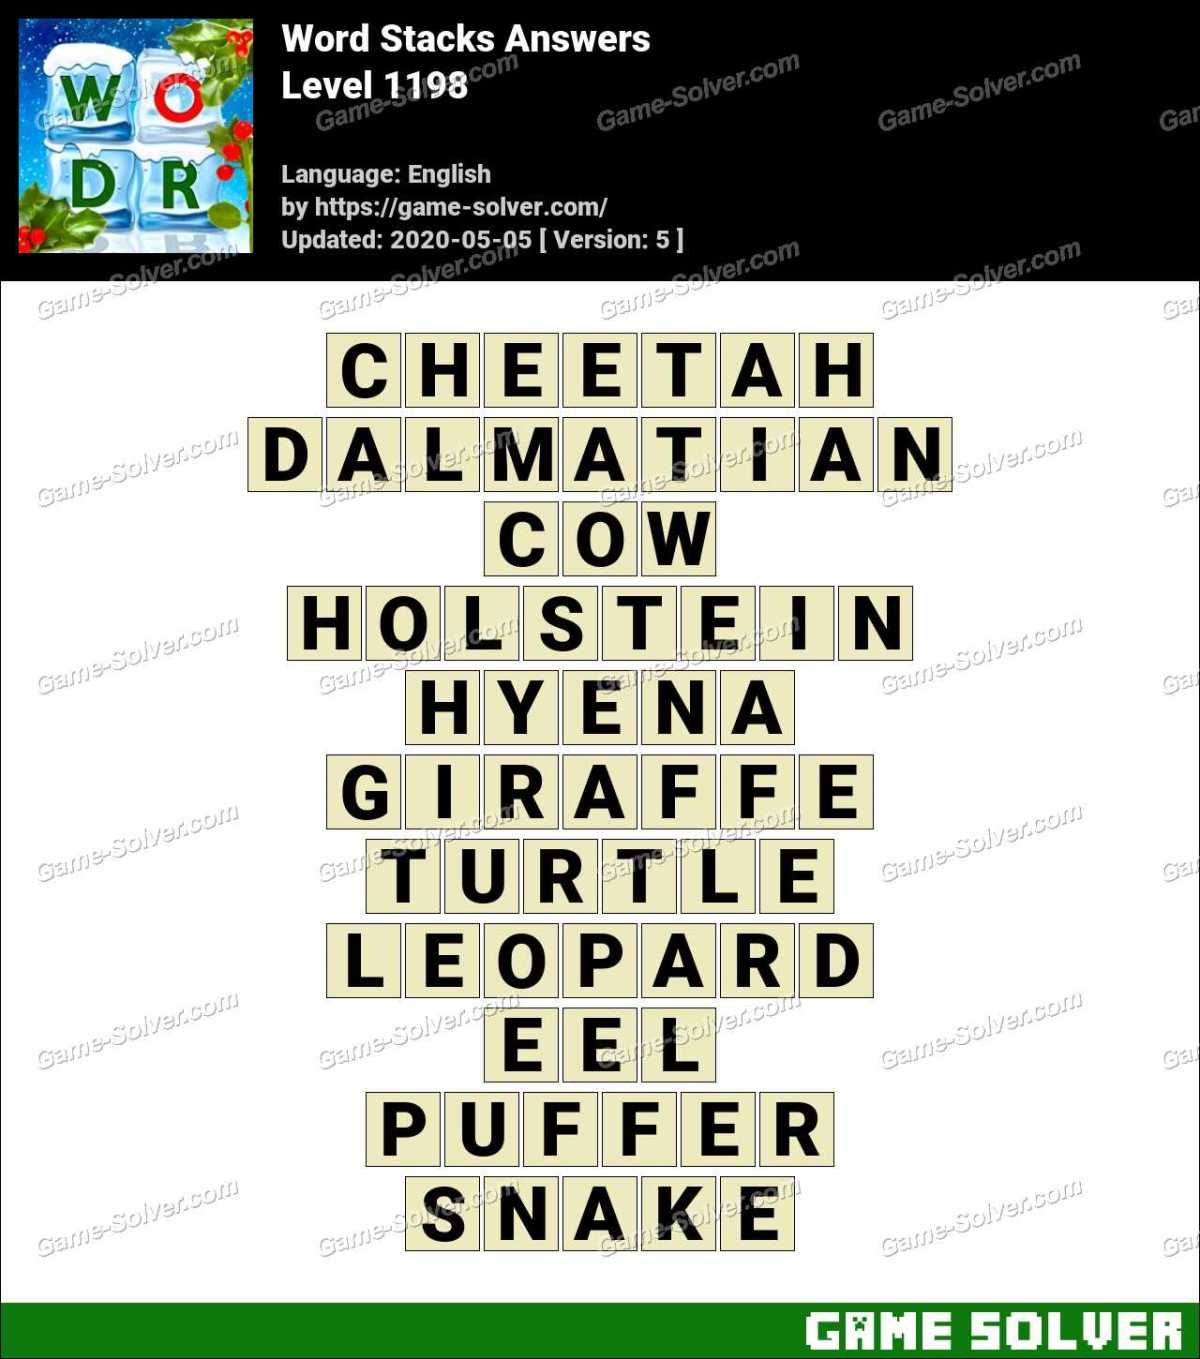 Word Stacks Level 1198 Answers